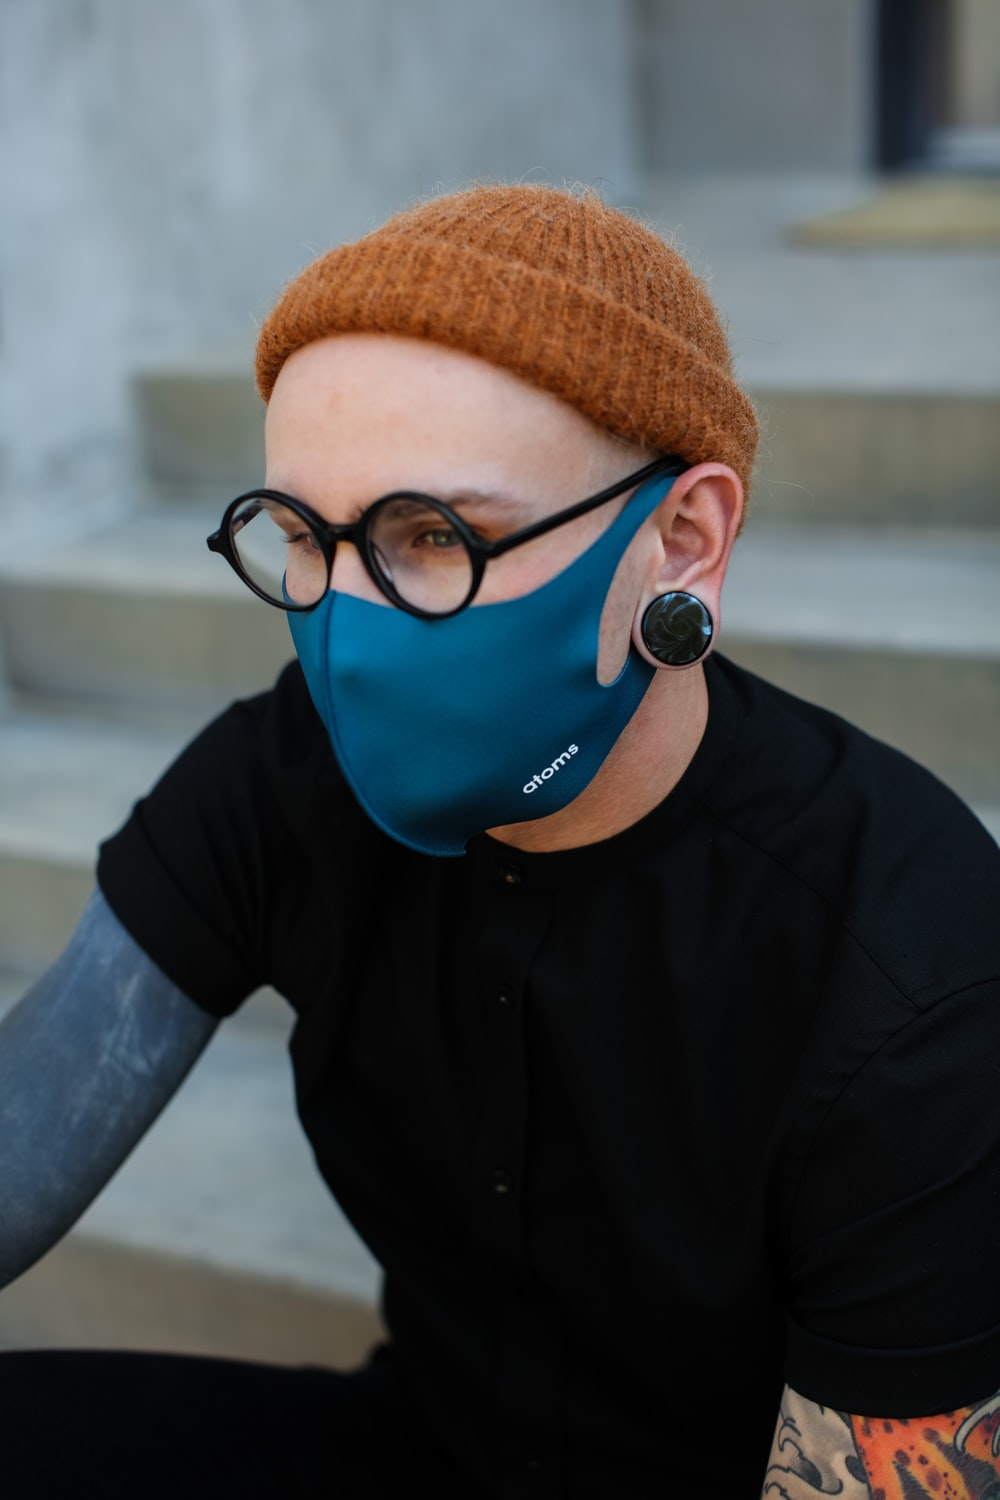 man in black button up shirt wearing brown knit cap and blue goggles